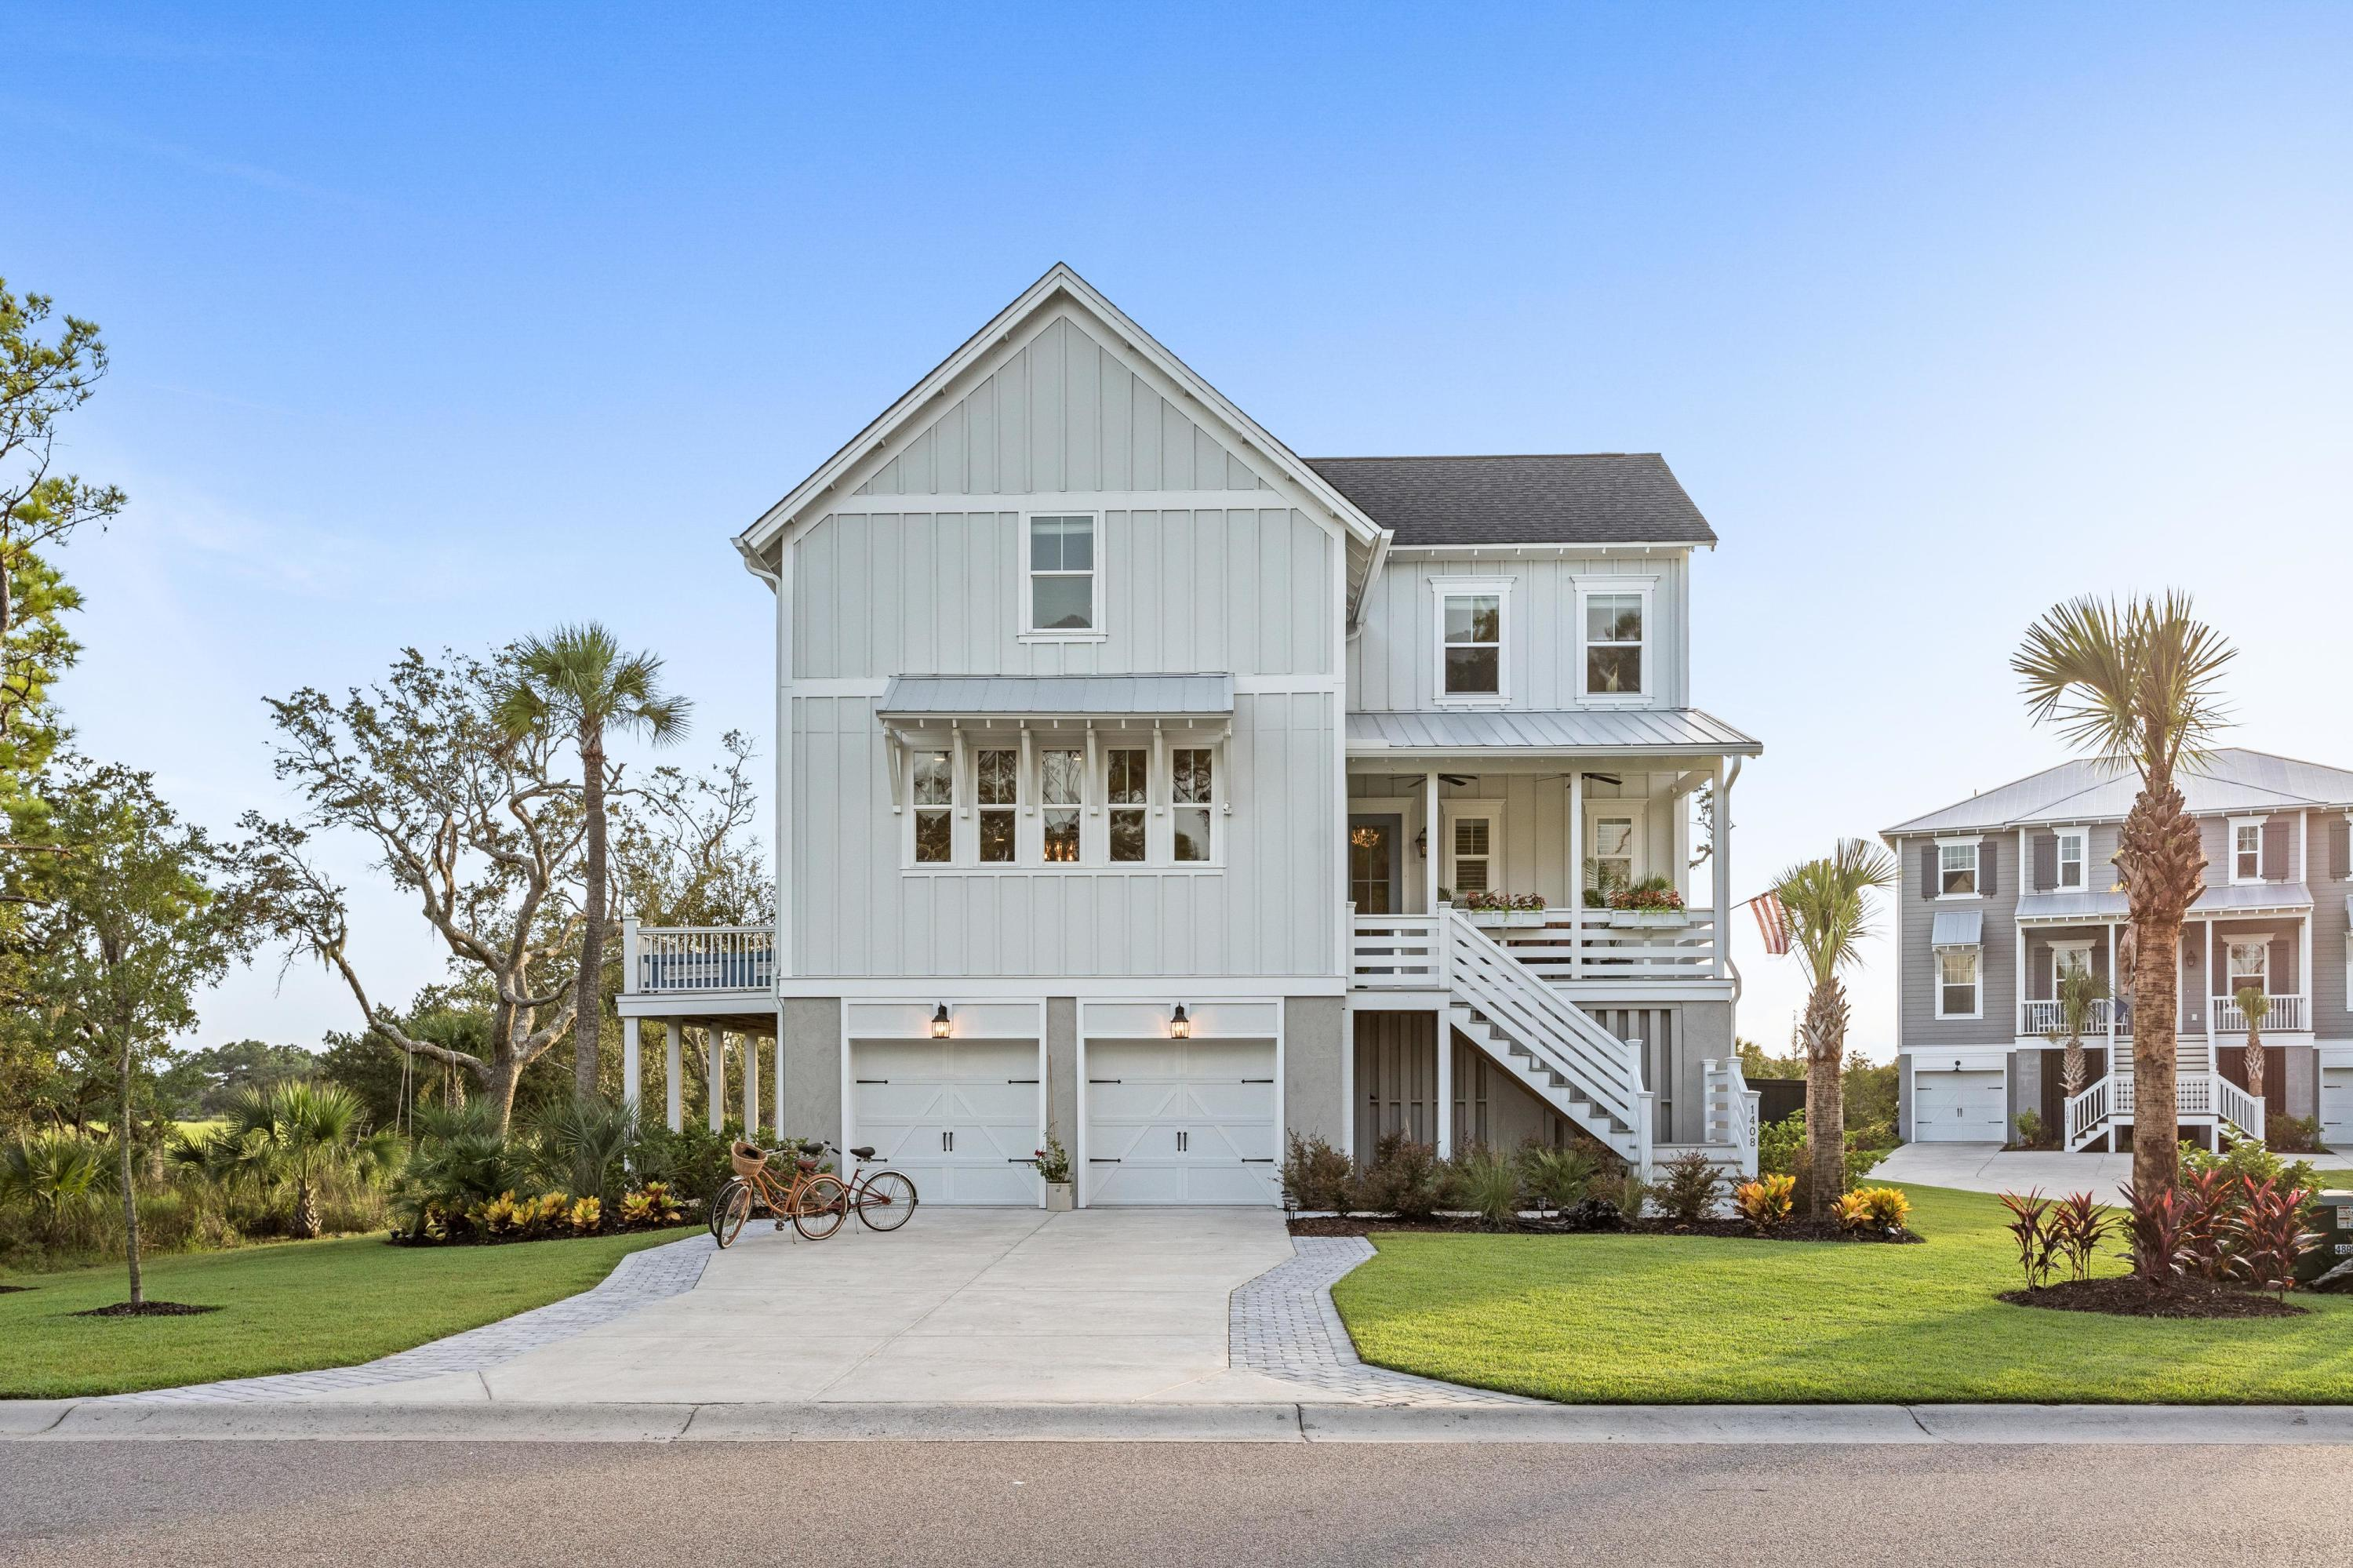 Stratton by the Sound Homes For Sale - 1408 Stratton, Mount Pleasant, SC - 38